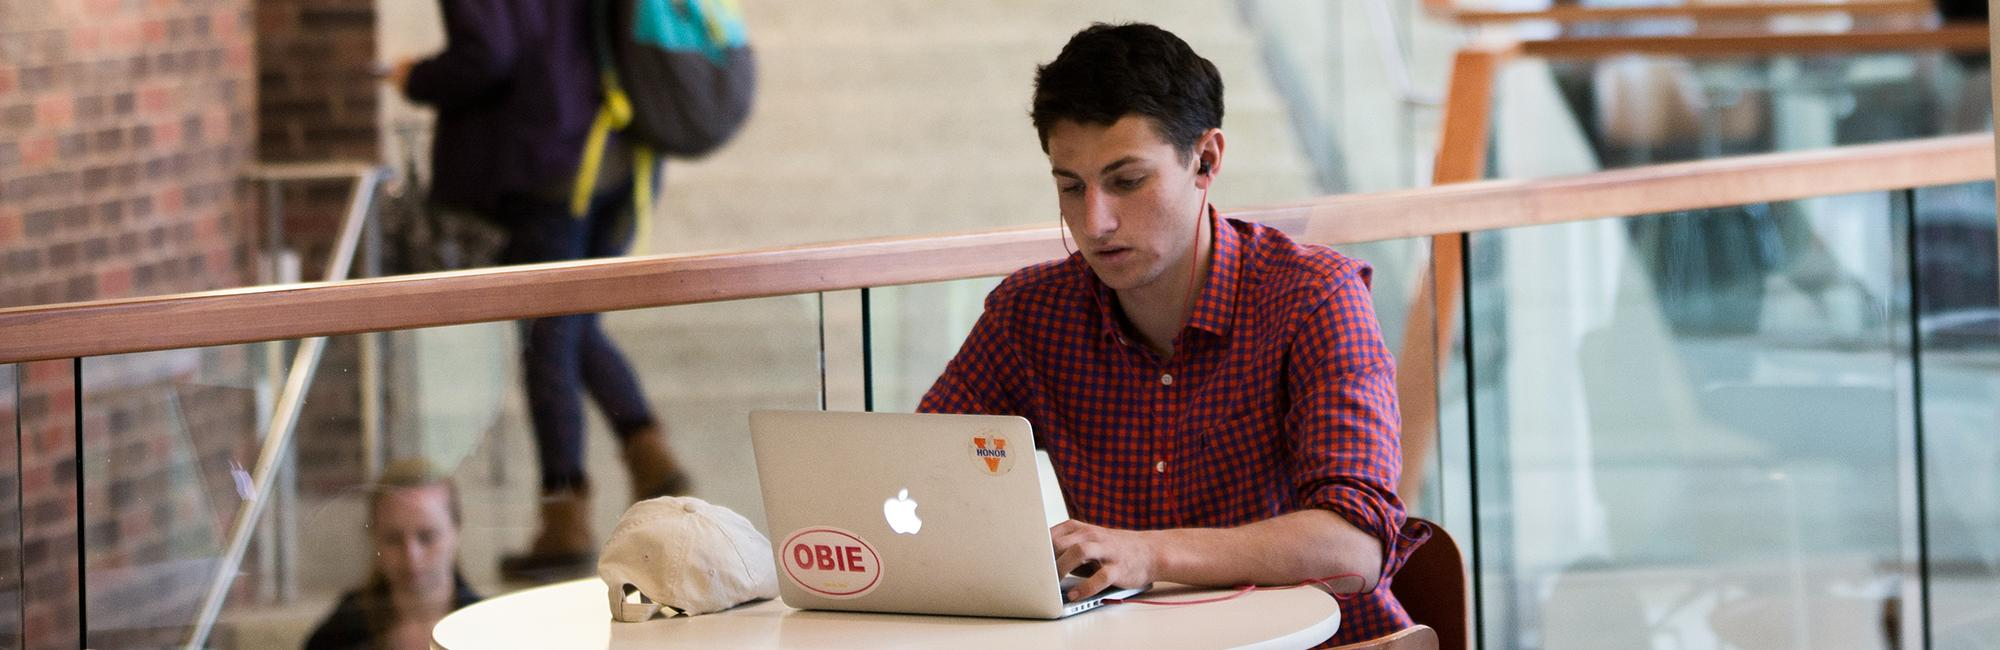 Male student sitting at table using a laptop